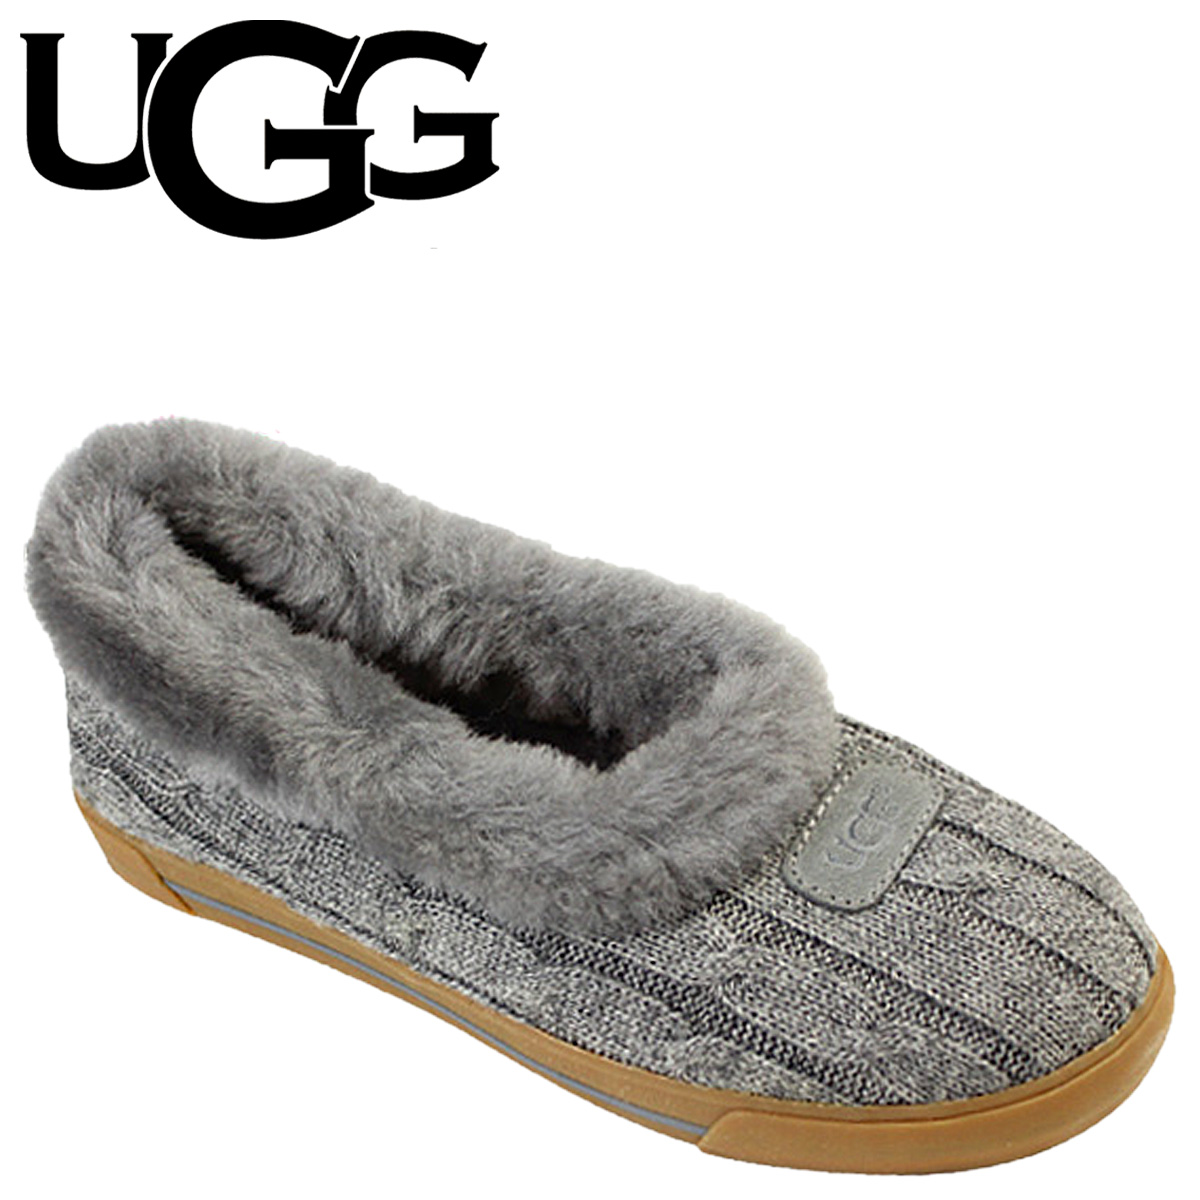 classic styles how to buy run shoes アグ UGG lei orchid mouton slippers WOMENS RYAN KNIT SLIPPER 3314 knit Lady's